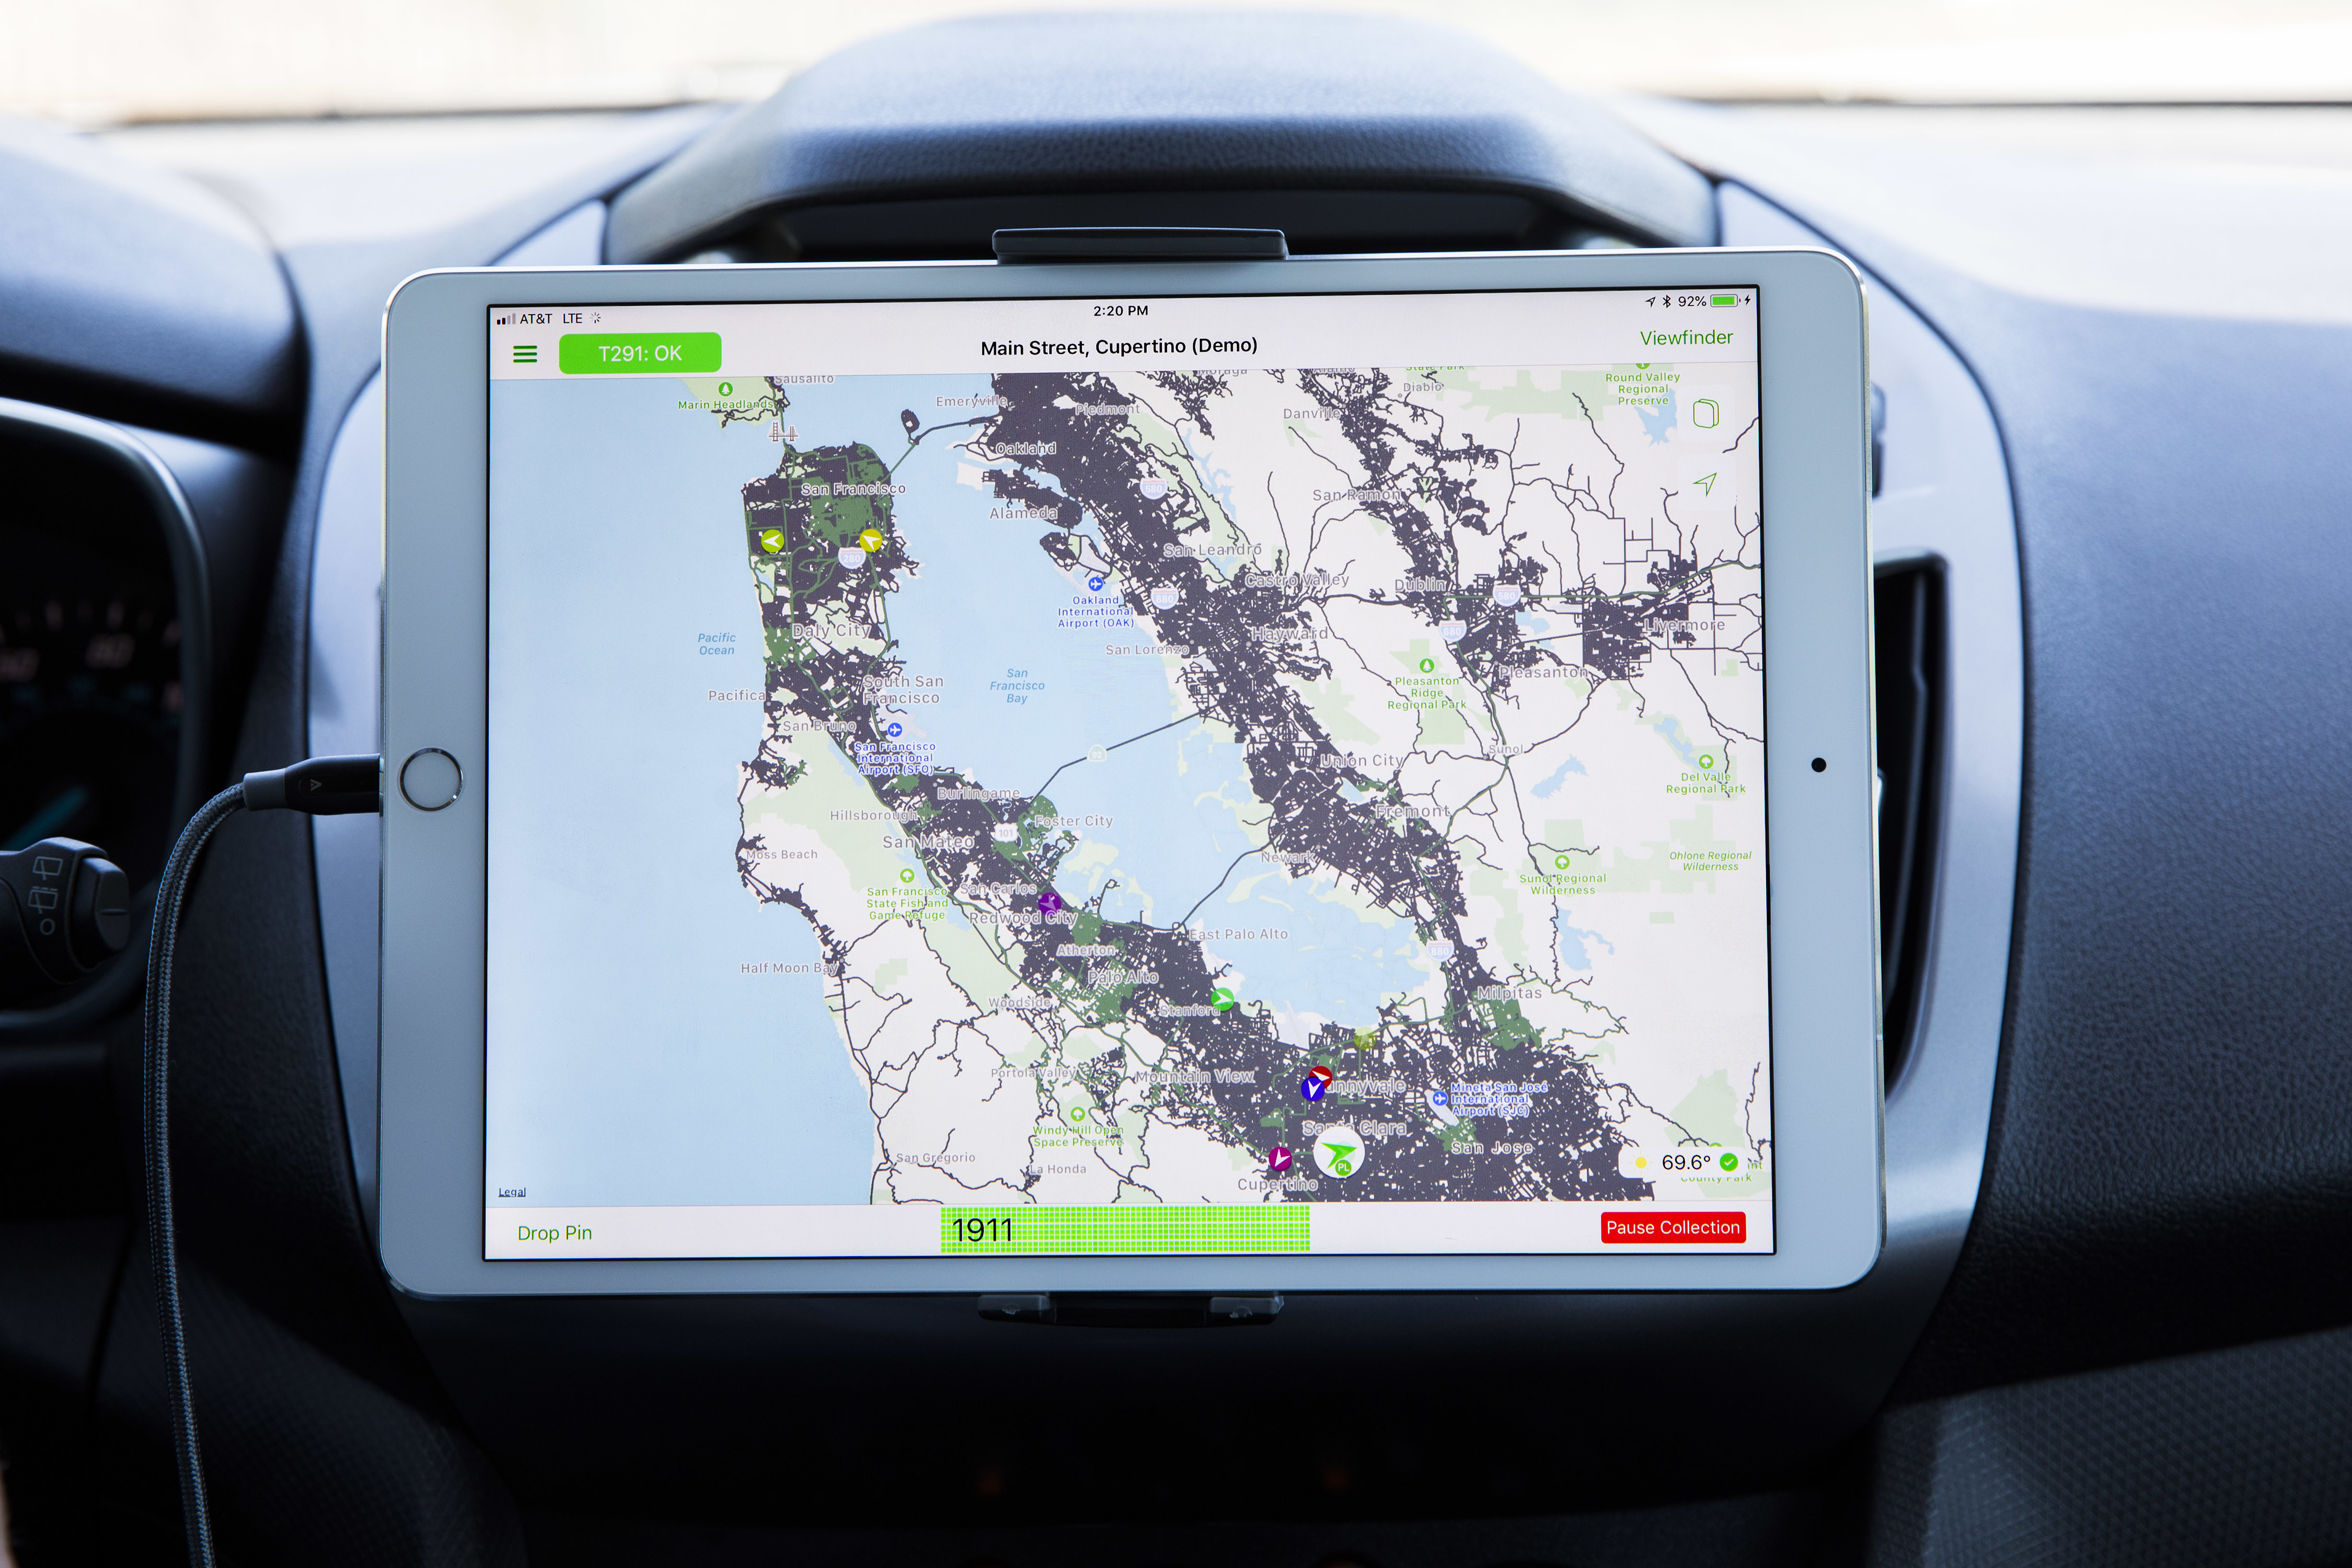 Apple is building Apple Maps from scratch to improve